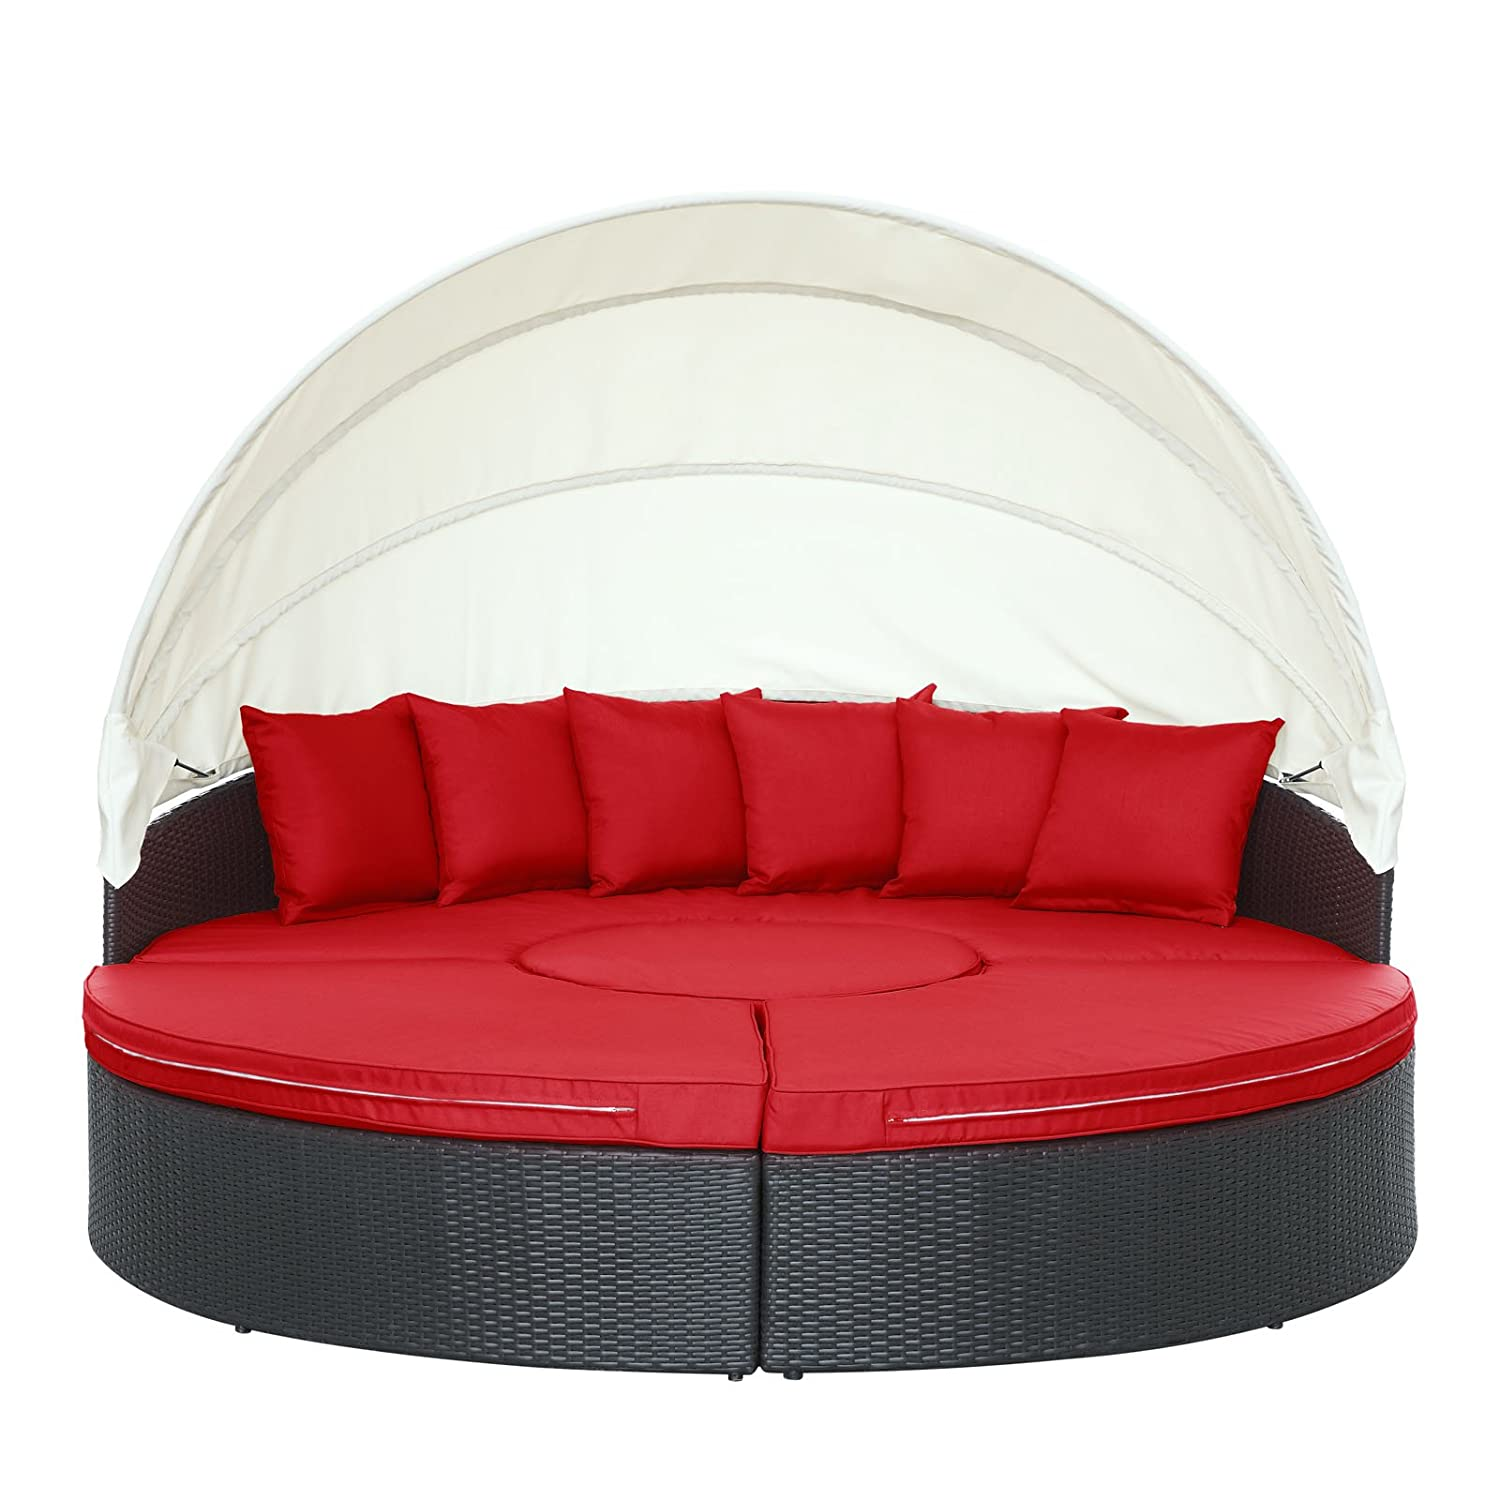 Amazon.com  Modway Quest Circular Outdoor Wicker Rattan Patio Daybed with Canopy in Espresso Red  Garden u0026 Outdoor  sc 1 st  Amazon.com & Amazon.com : Modway Quest Circular Outdoor Wicker Rattan Patio ...